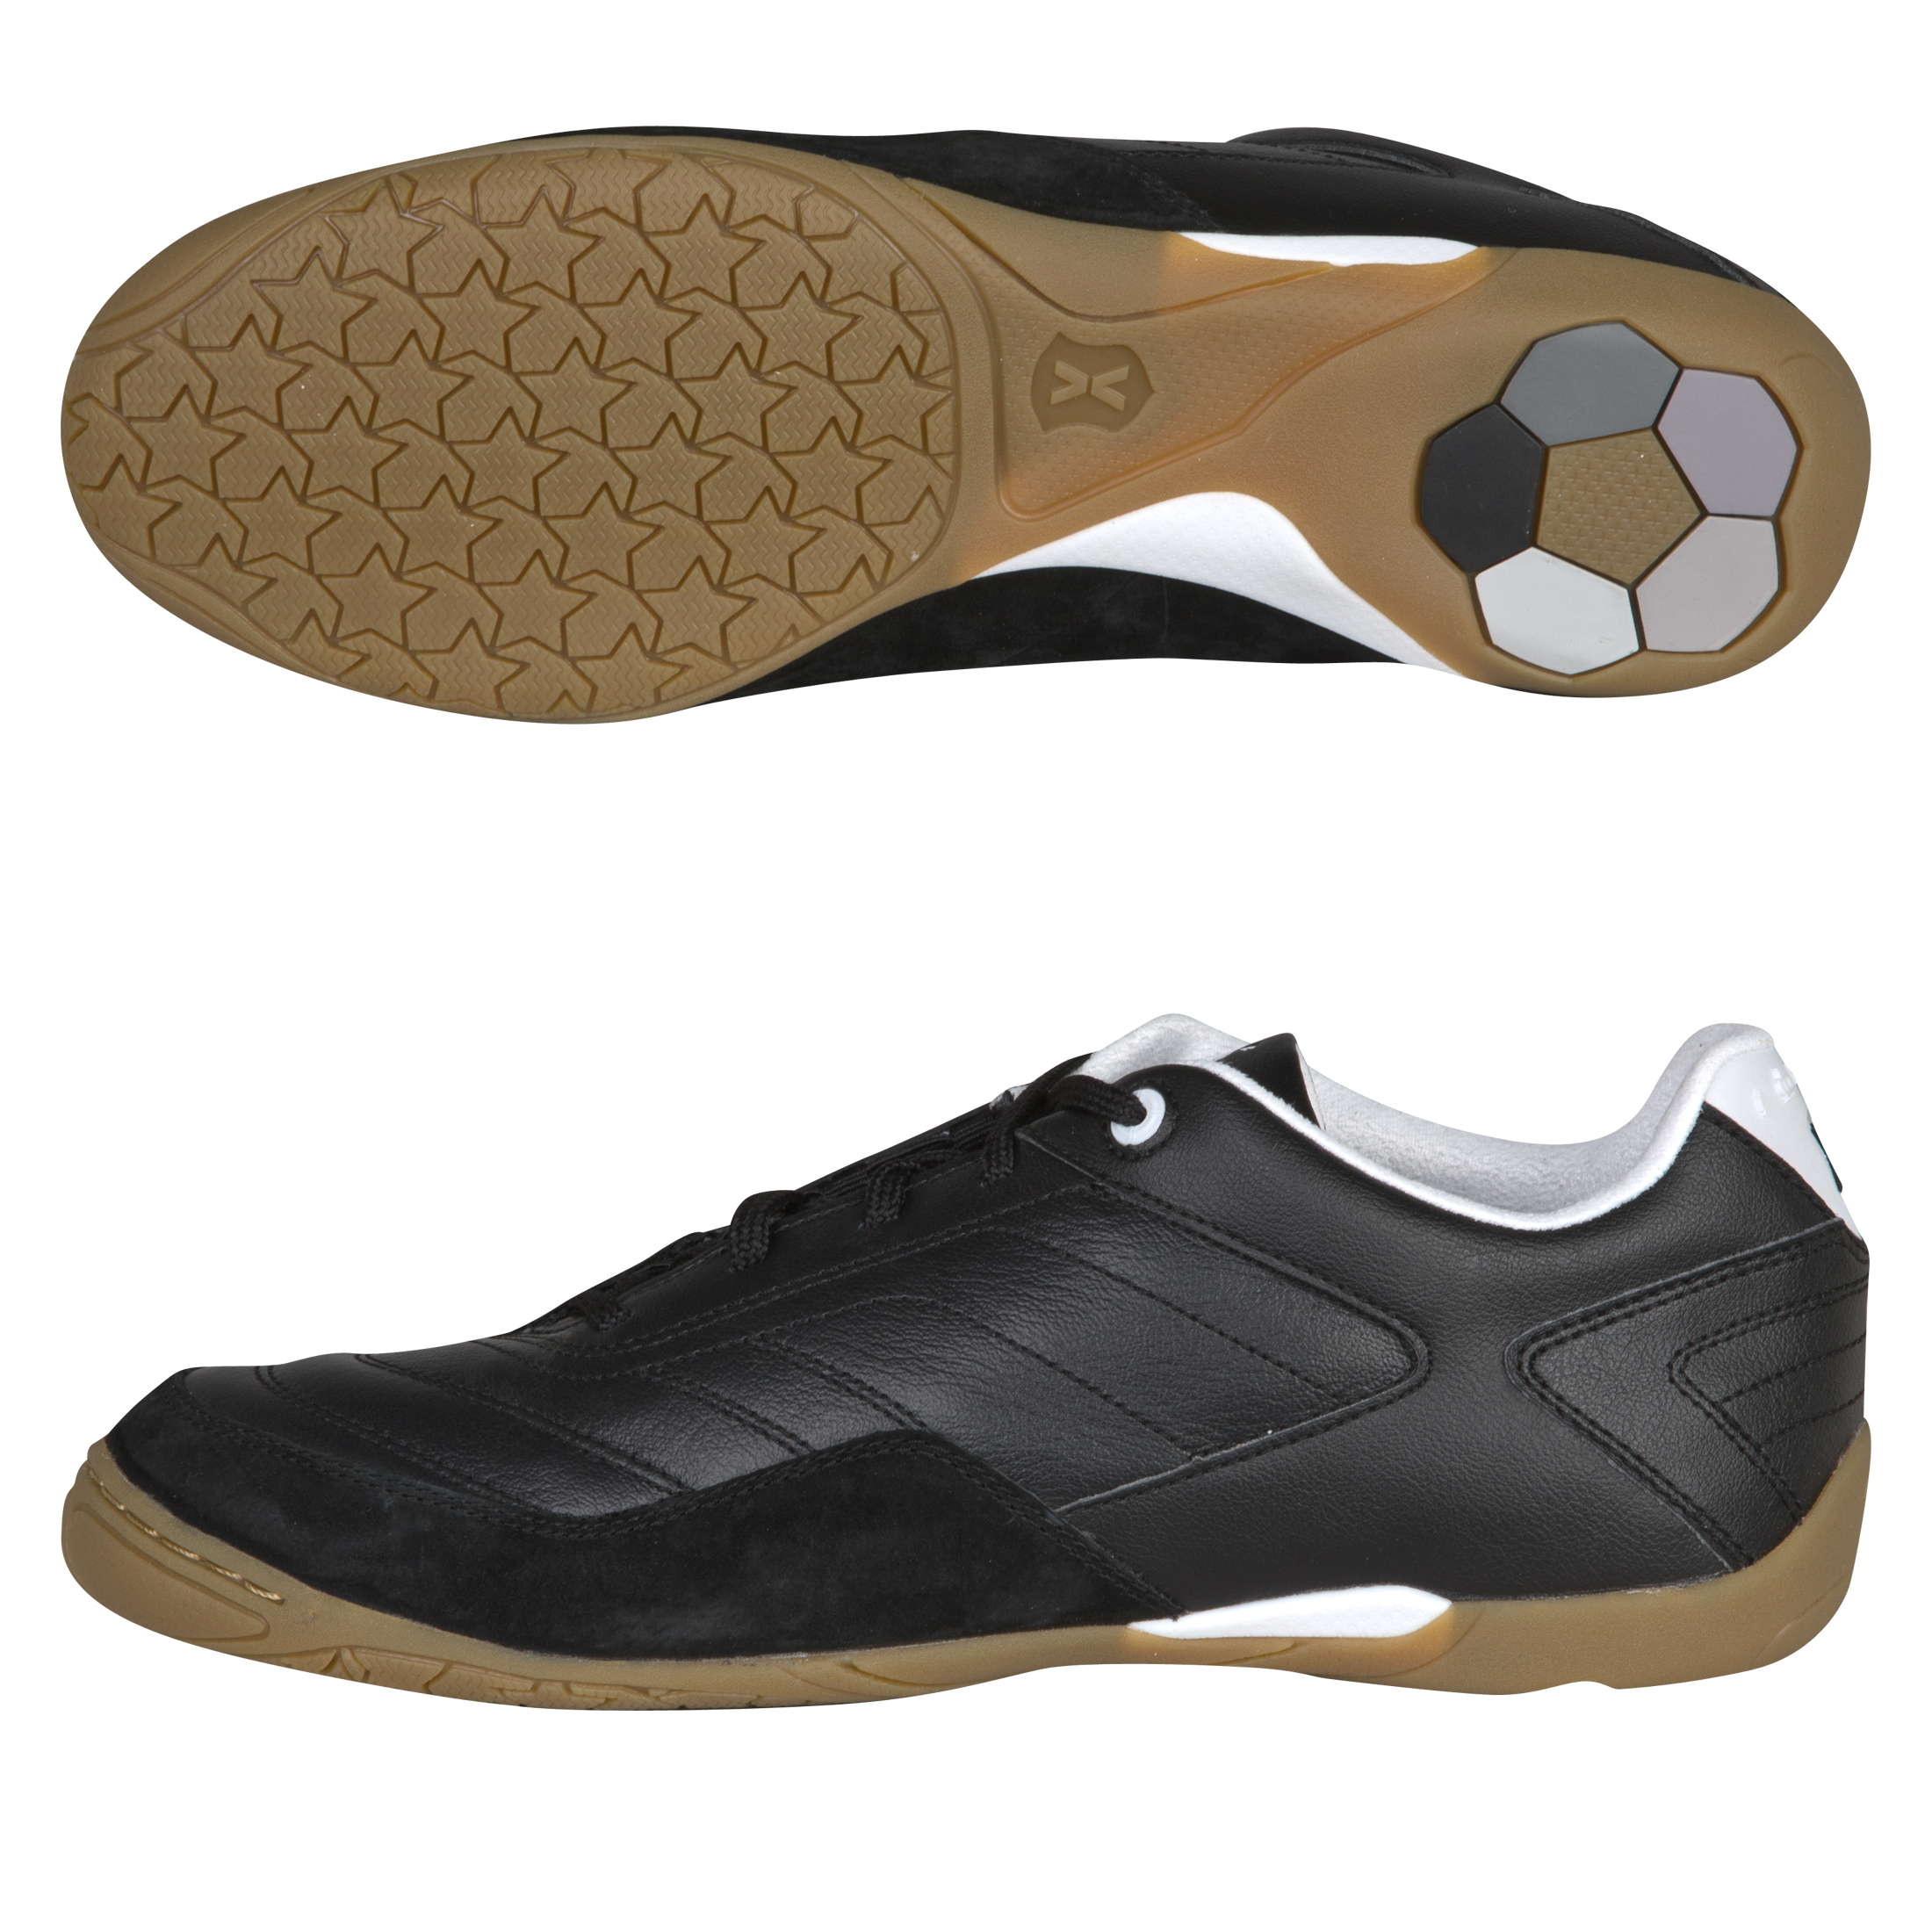 Pele Sports Radium Futsal Trainers - Black/White